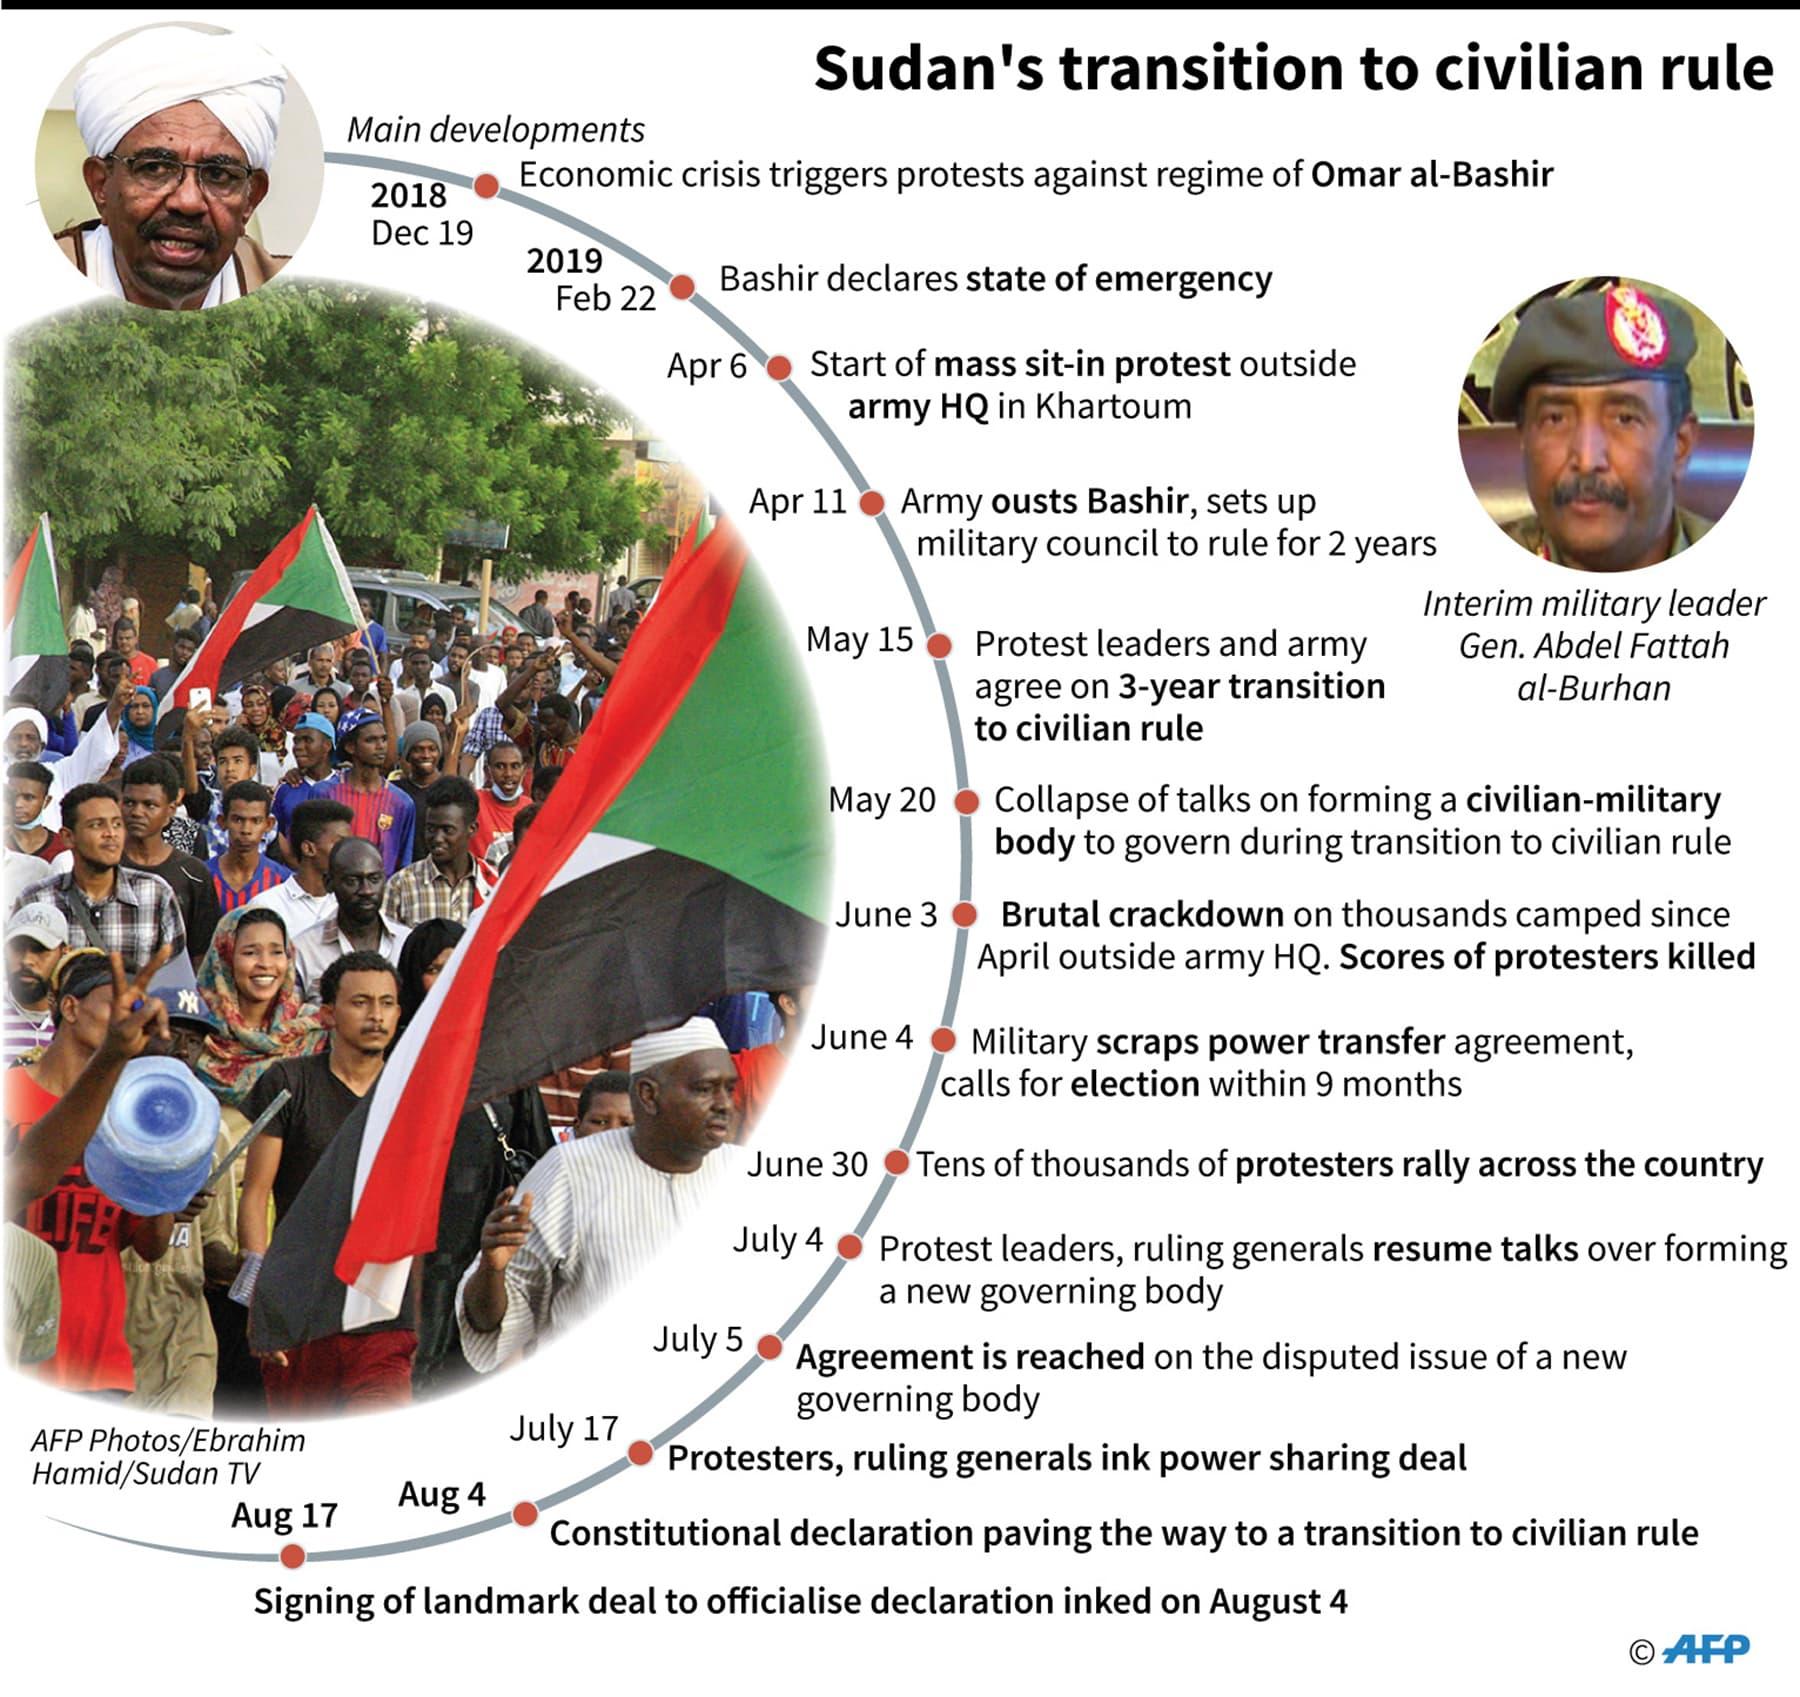 A timeline of the developments in Sudan's transition to civilian rule. — AFP